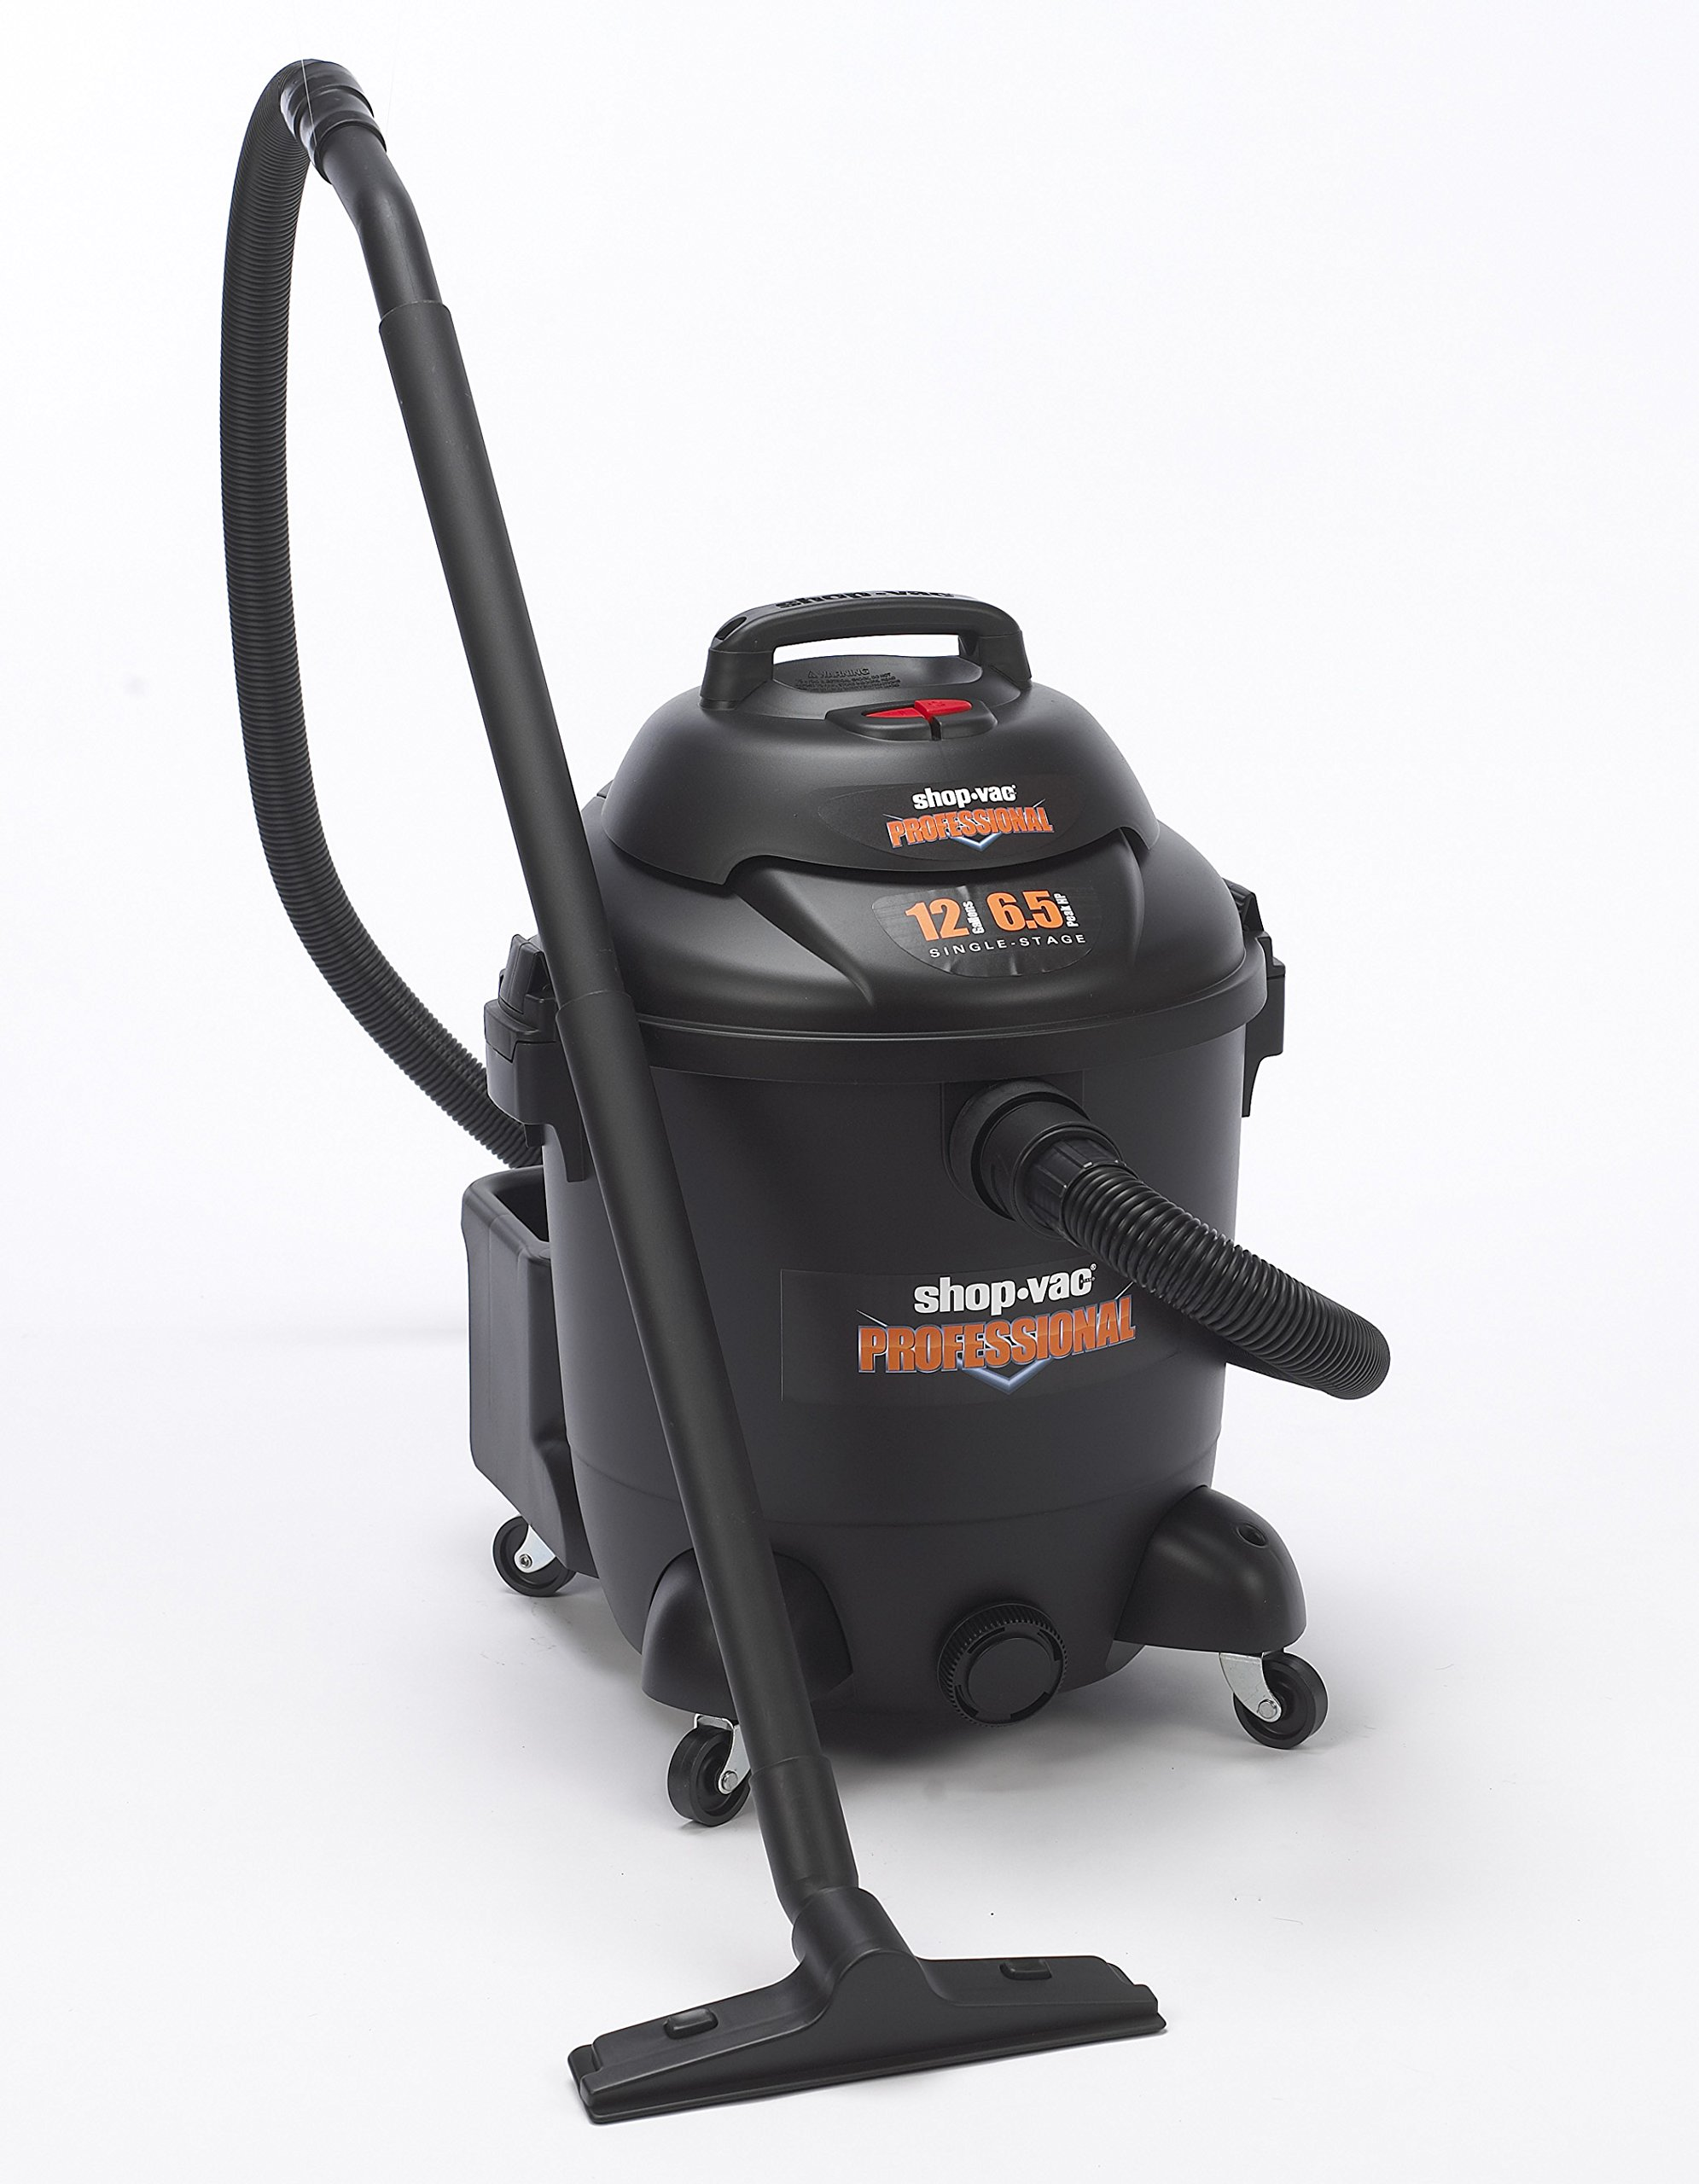 Shop-Vac 9621210 Professional Commercial Duty Vacuum - 12 Gallon Capacity by Shop-Vac (Image #3)